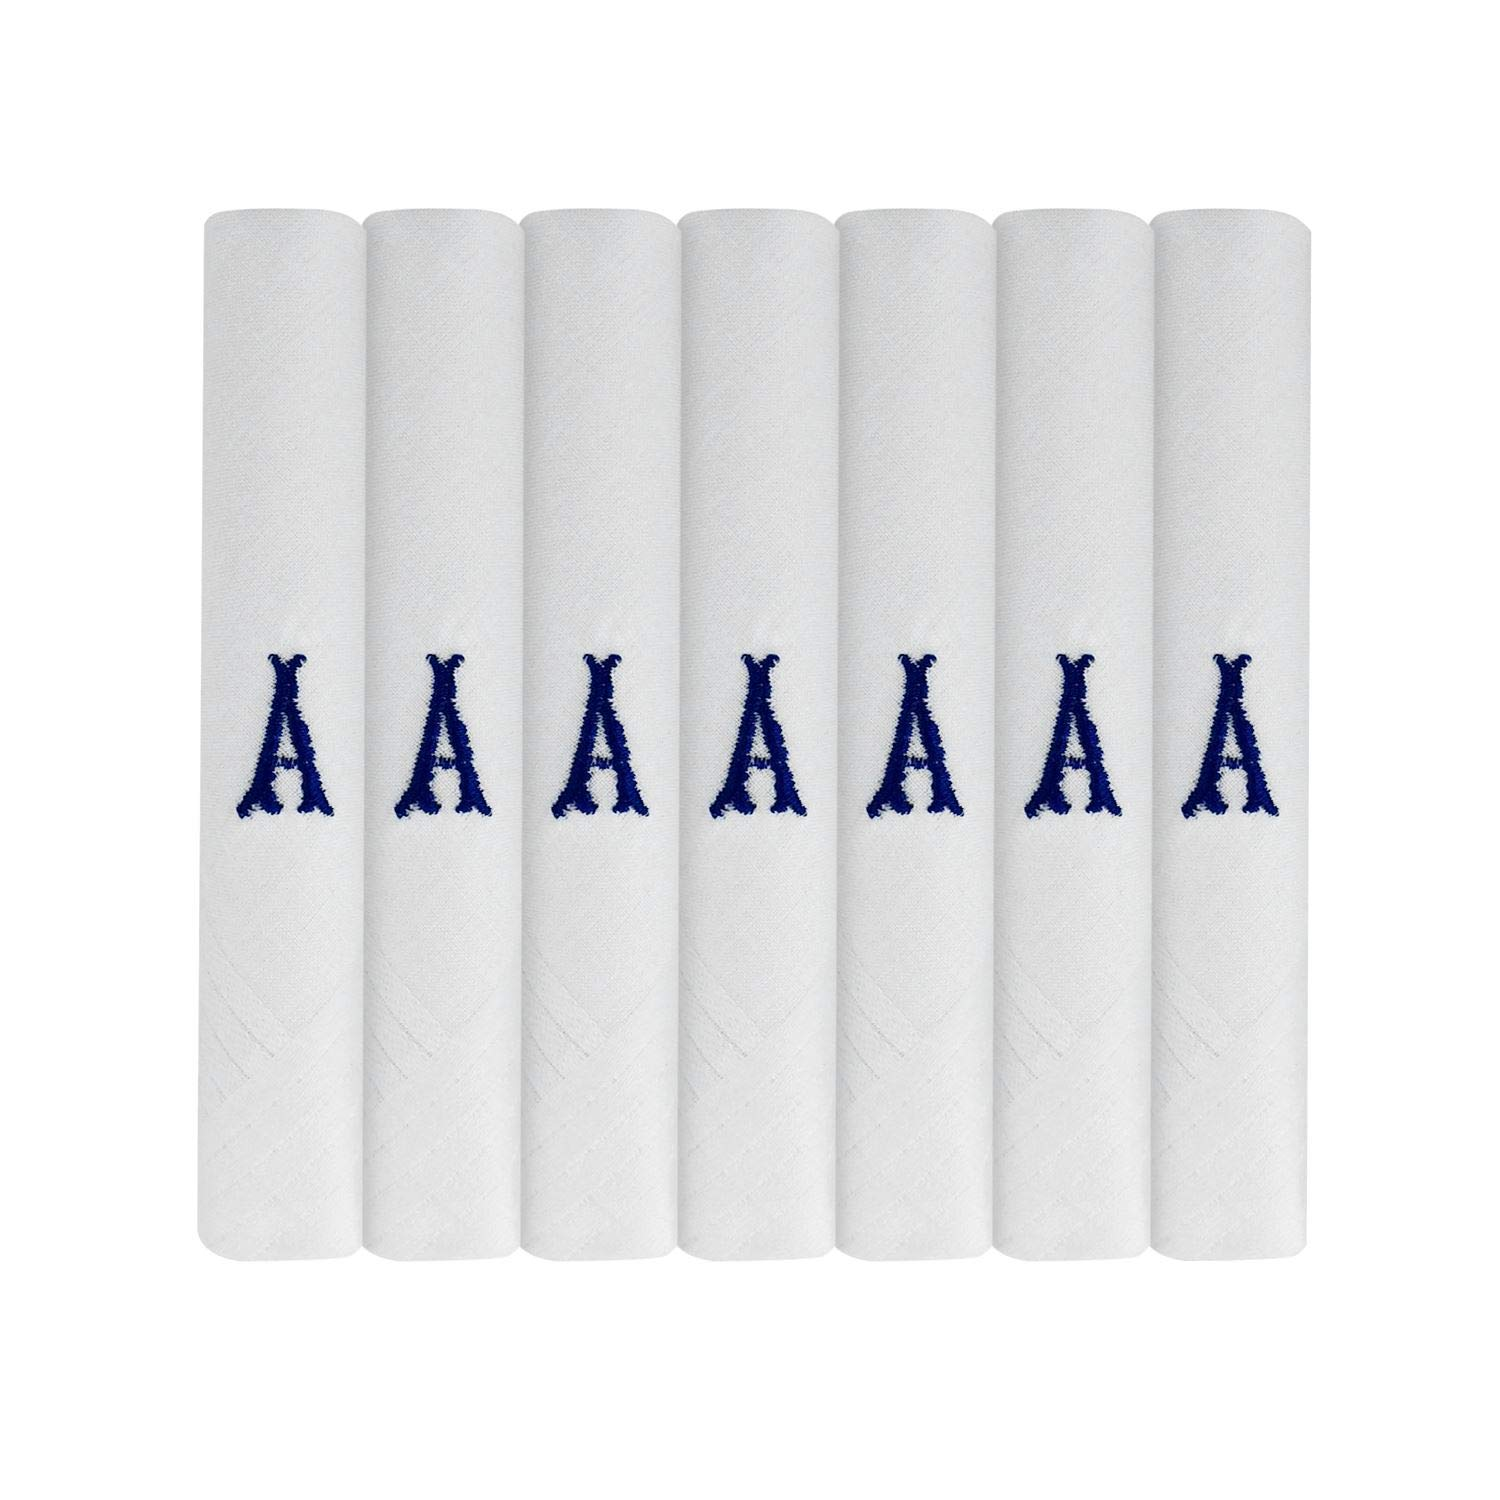 7 Pack Of Mens Initial Embroidered White Handkerchiefs With Satin Border, Various Letters Various Letters (A)